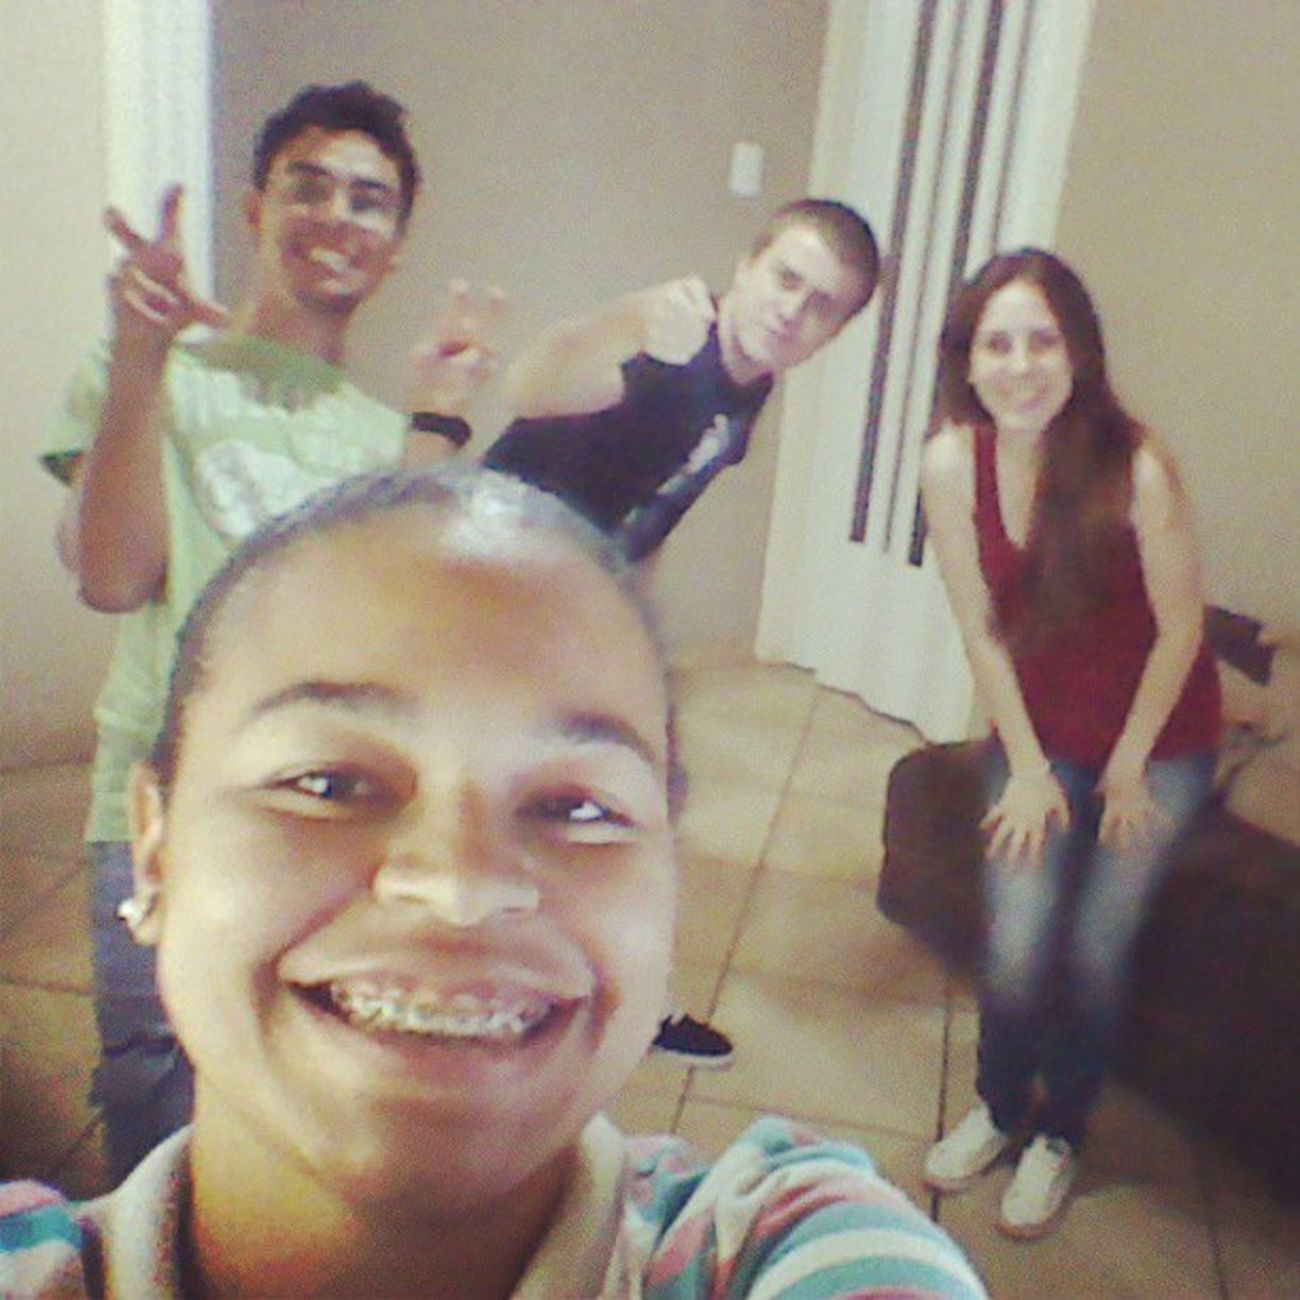 Os MELHORES!!! Thebestfriends Pedro Joao Raques